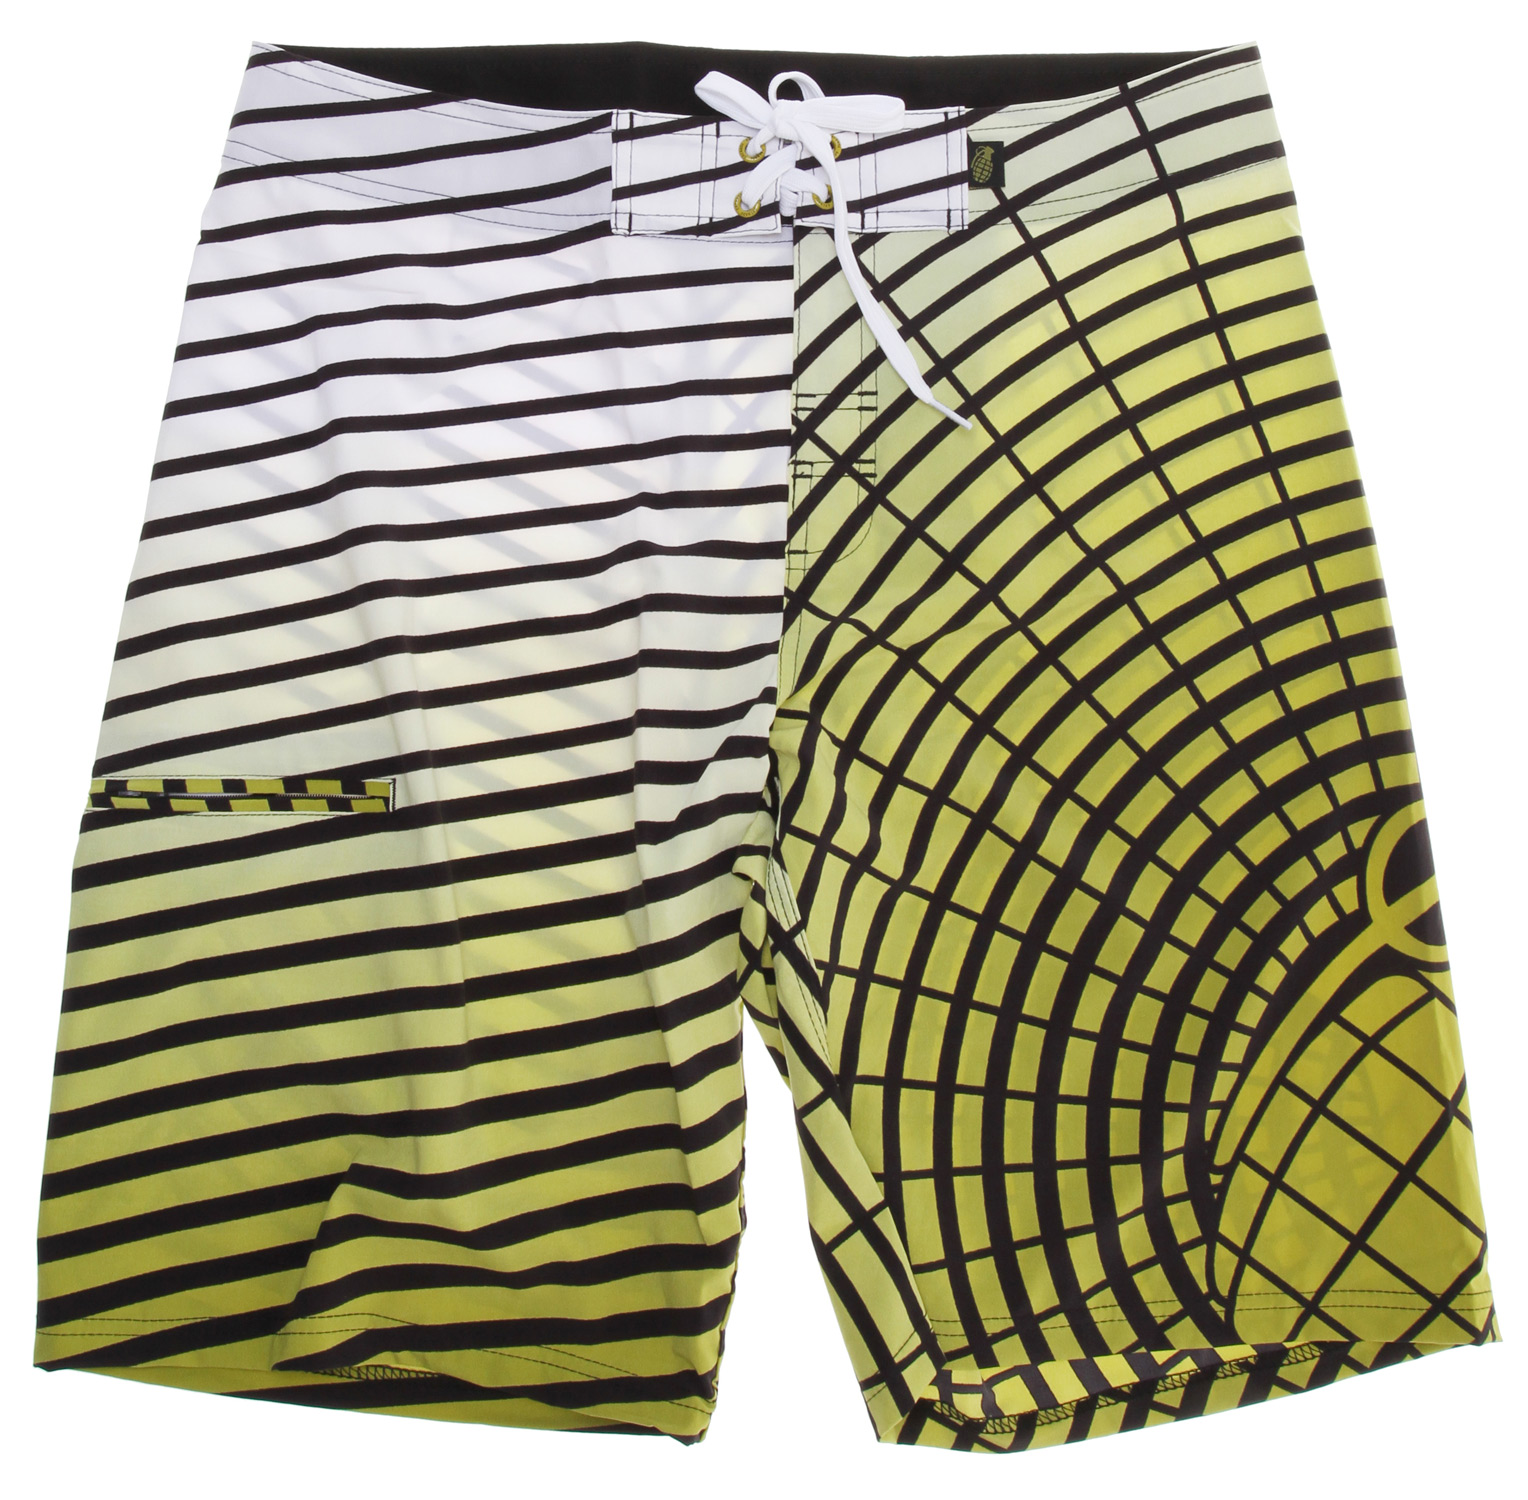 Surf The Grenade Explosive Boardshorts are perfect for active fun at the beach, pool, or wherever! The polyester/spandex blend fabric is both durable and comfortable, with a drawstring waist and loosely fitted trunks for hot weather. These shorts also feature a small side pocket that is just the right size for stashing cards or keys. You can be confident that the Explosive Boardshorts will thrive in the rough and tumble of horsing around at the pool or surfing at the beach.Key Features of the Grenade Explosive Boardshorts: 83% polyester/17% spandex Drawstring fit 4 way stretch - $32.85